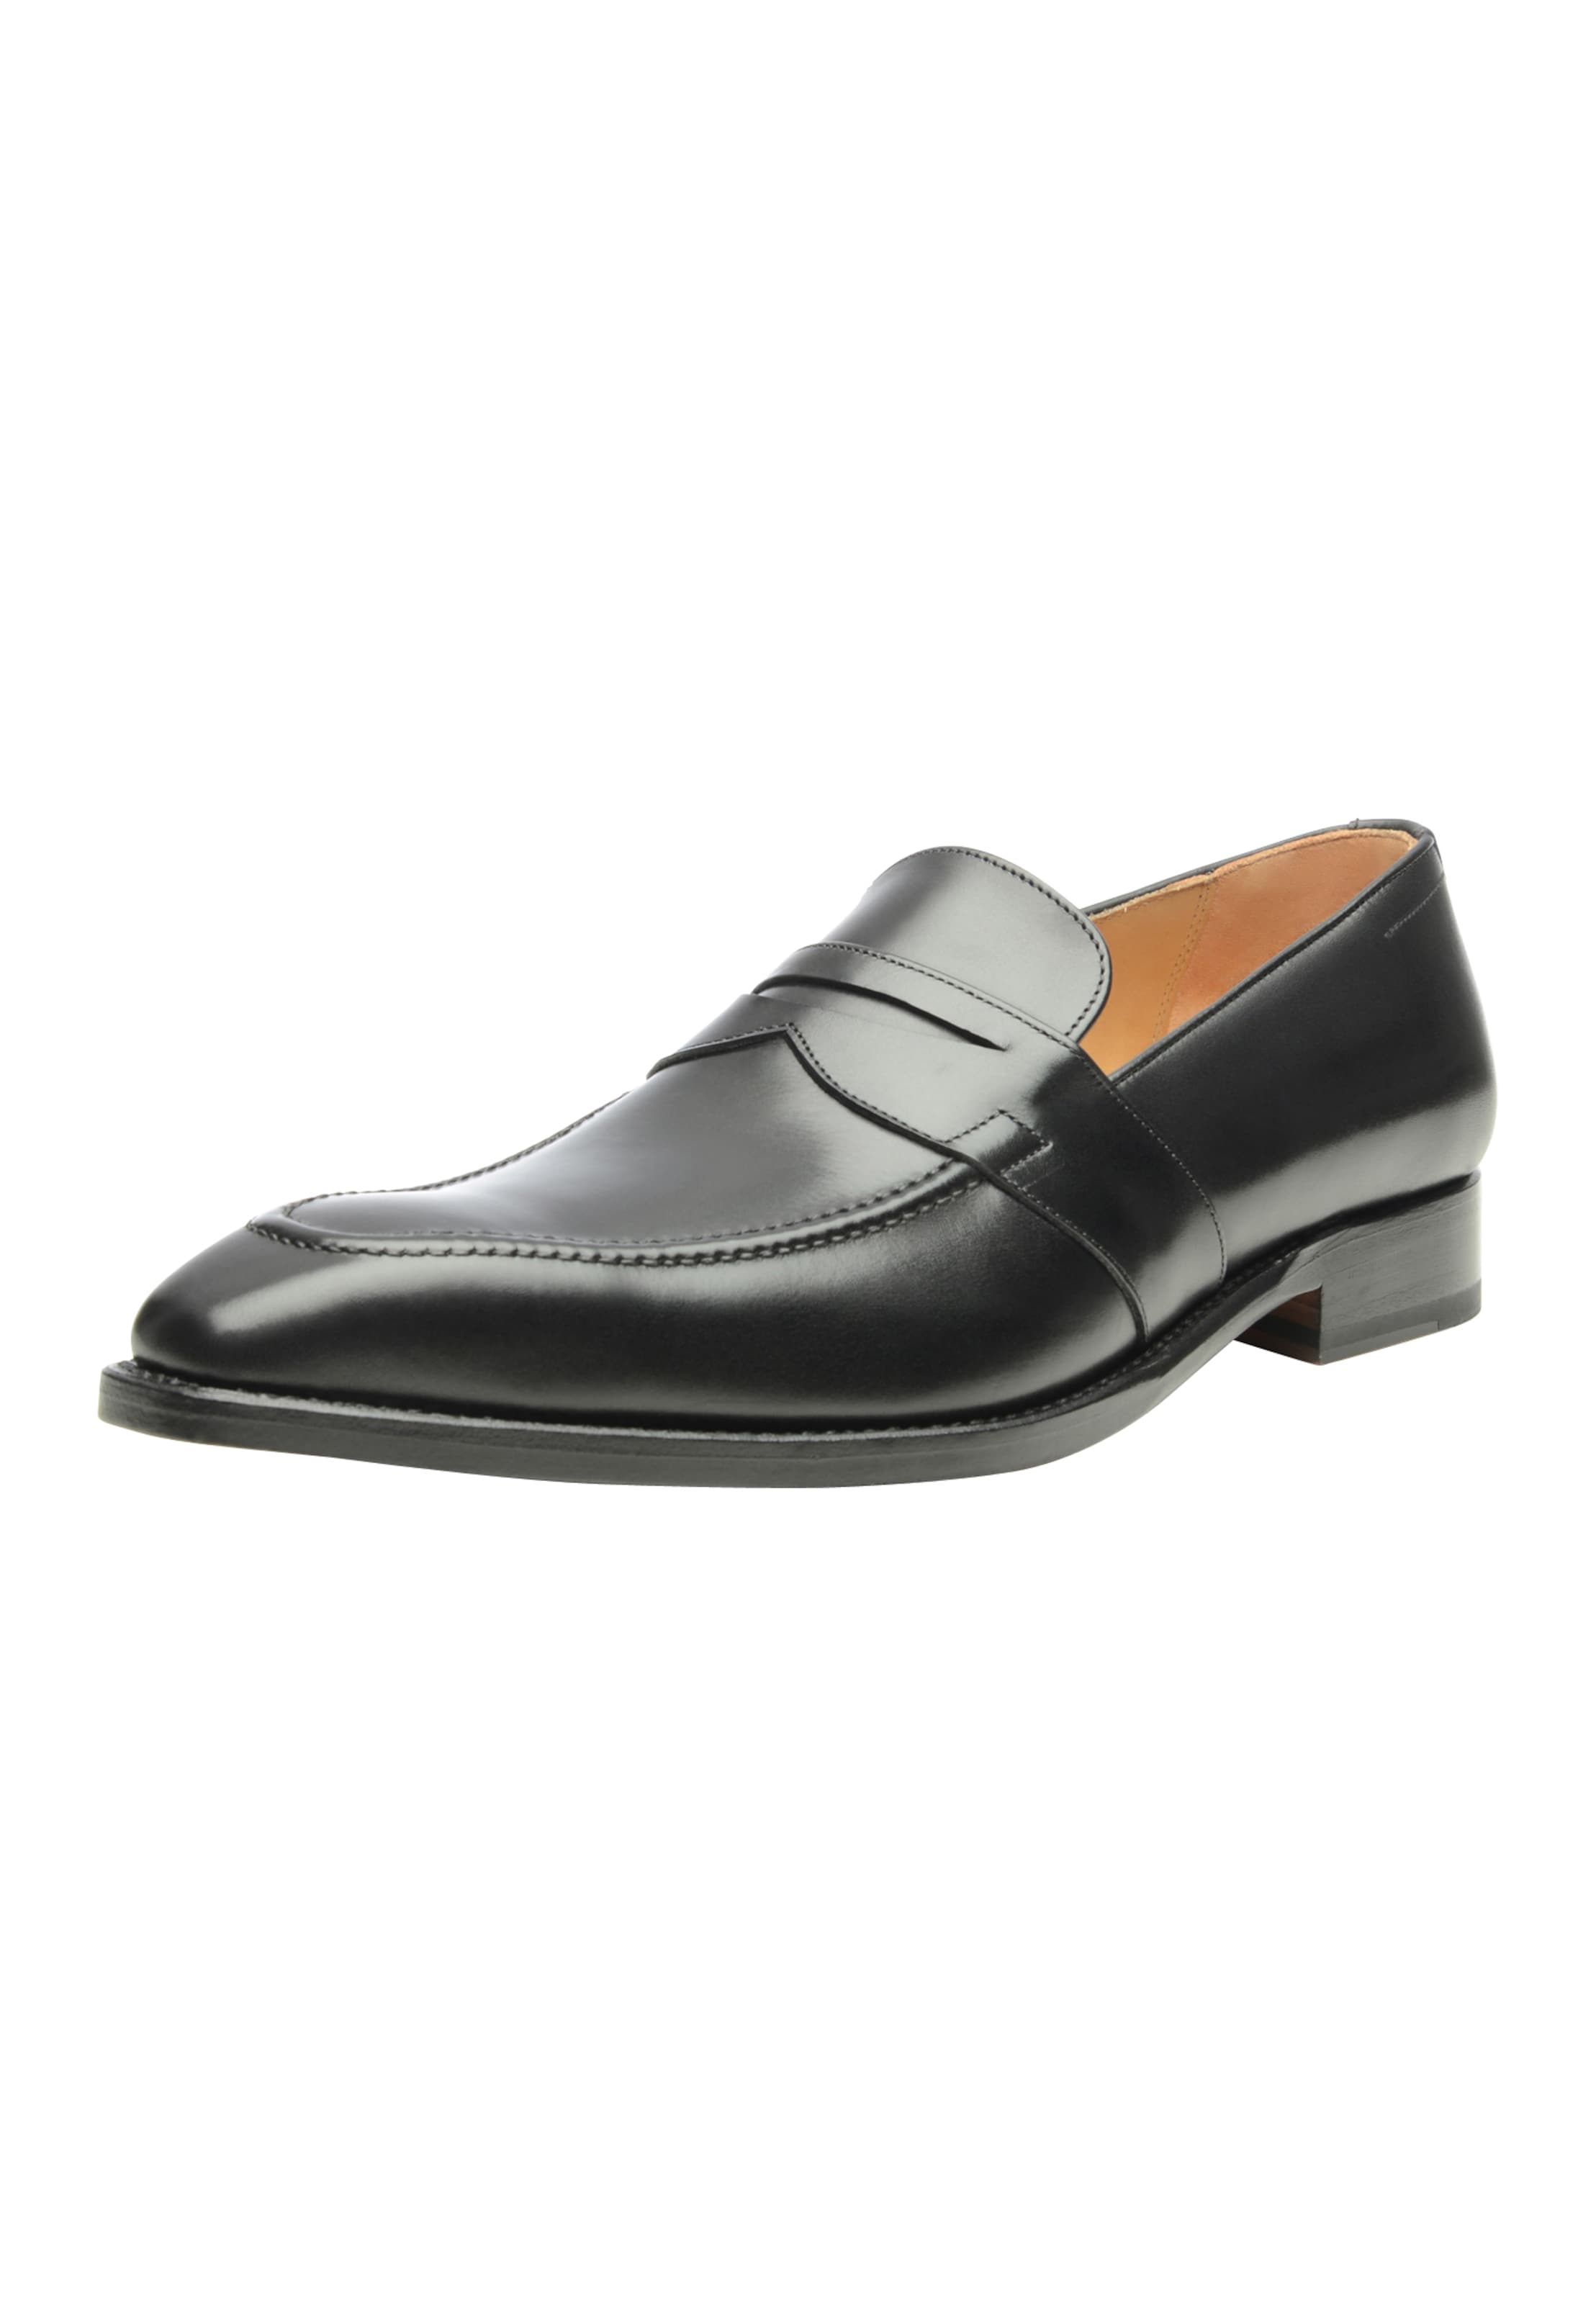 SHOEPASSION Loafer No. 750 Verschleißfeste billige Schuhe